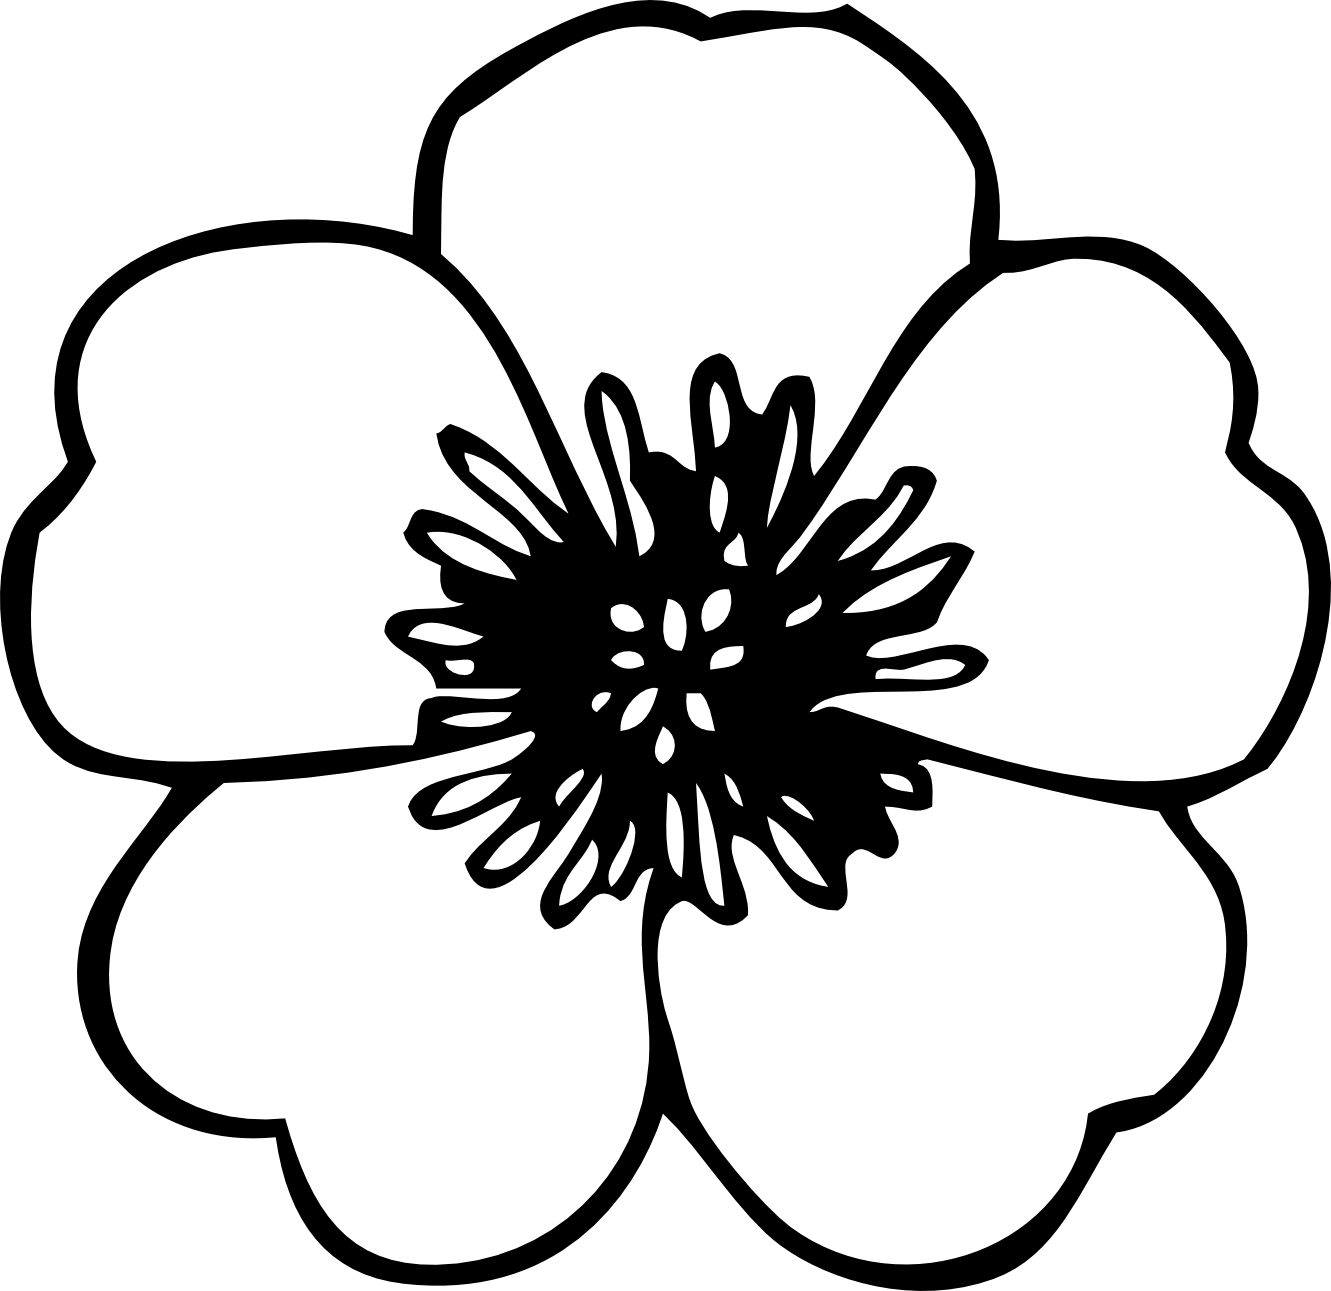 flower black and white clipart transparent